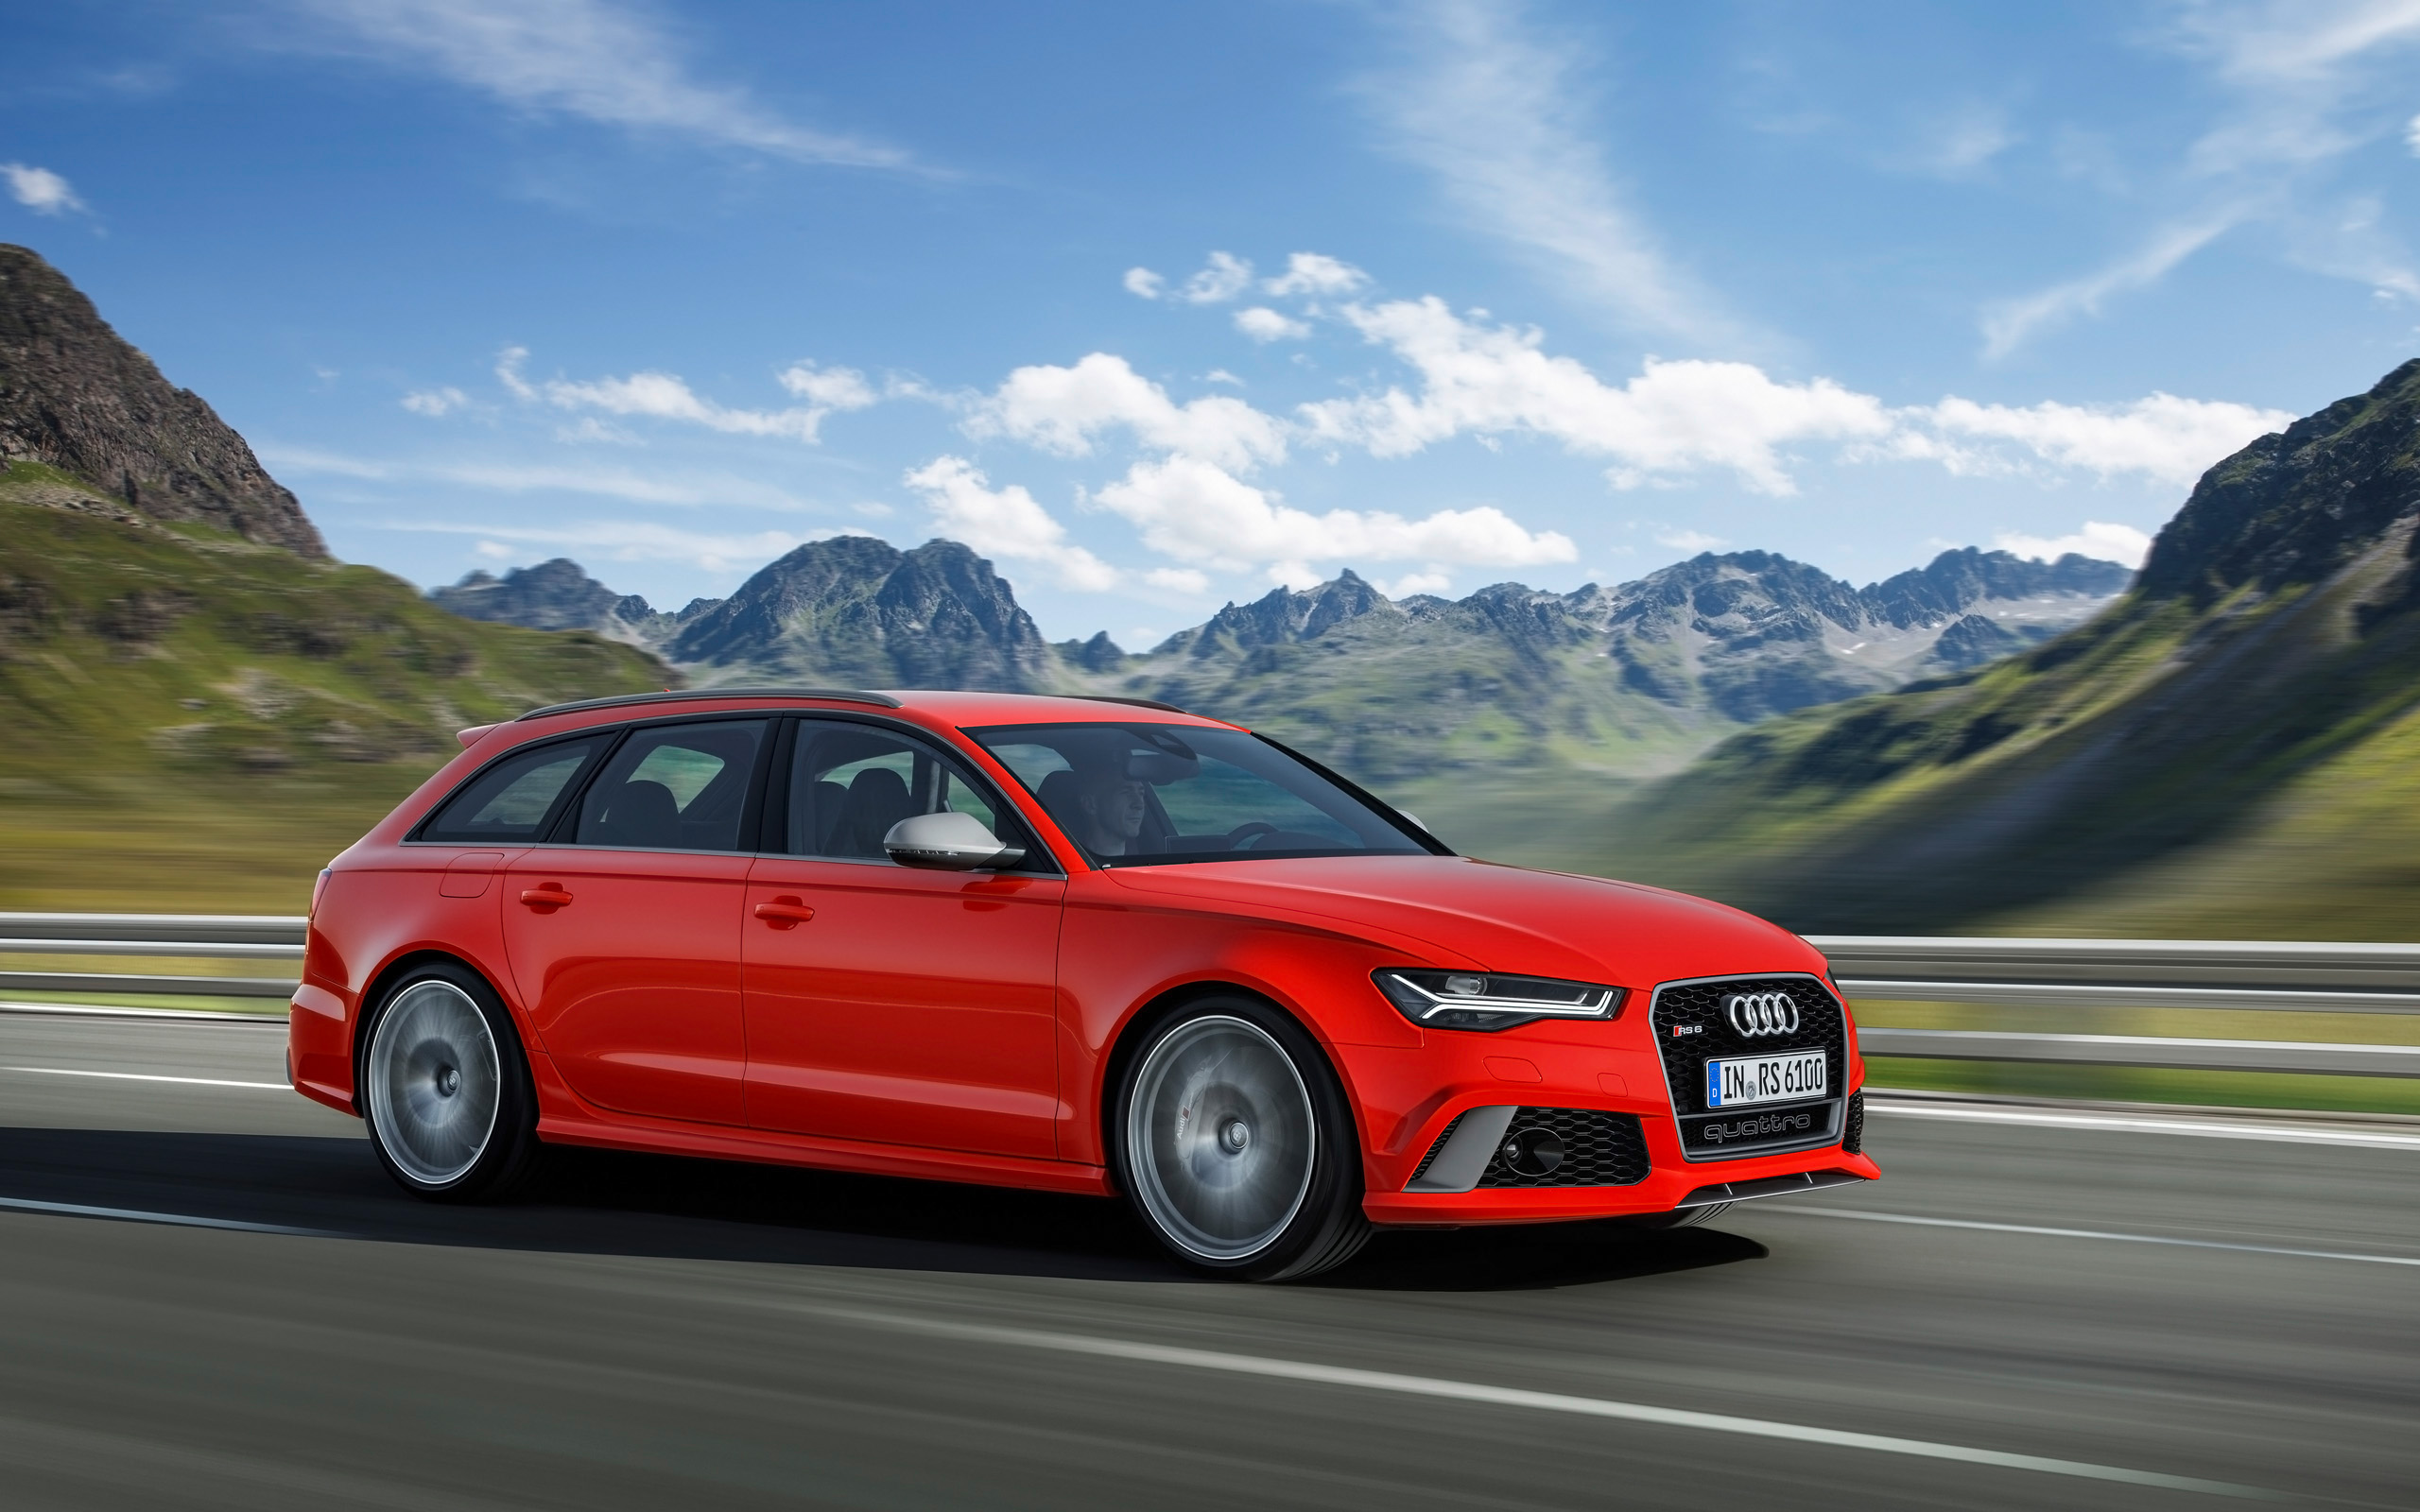 2016 Audi RS6 Avant Performance Wallpaper  HD Car Wallpapers